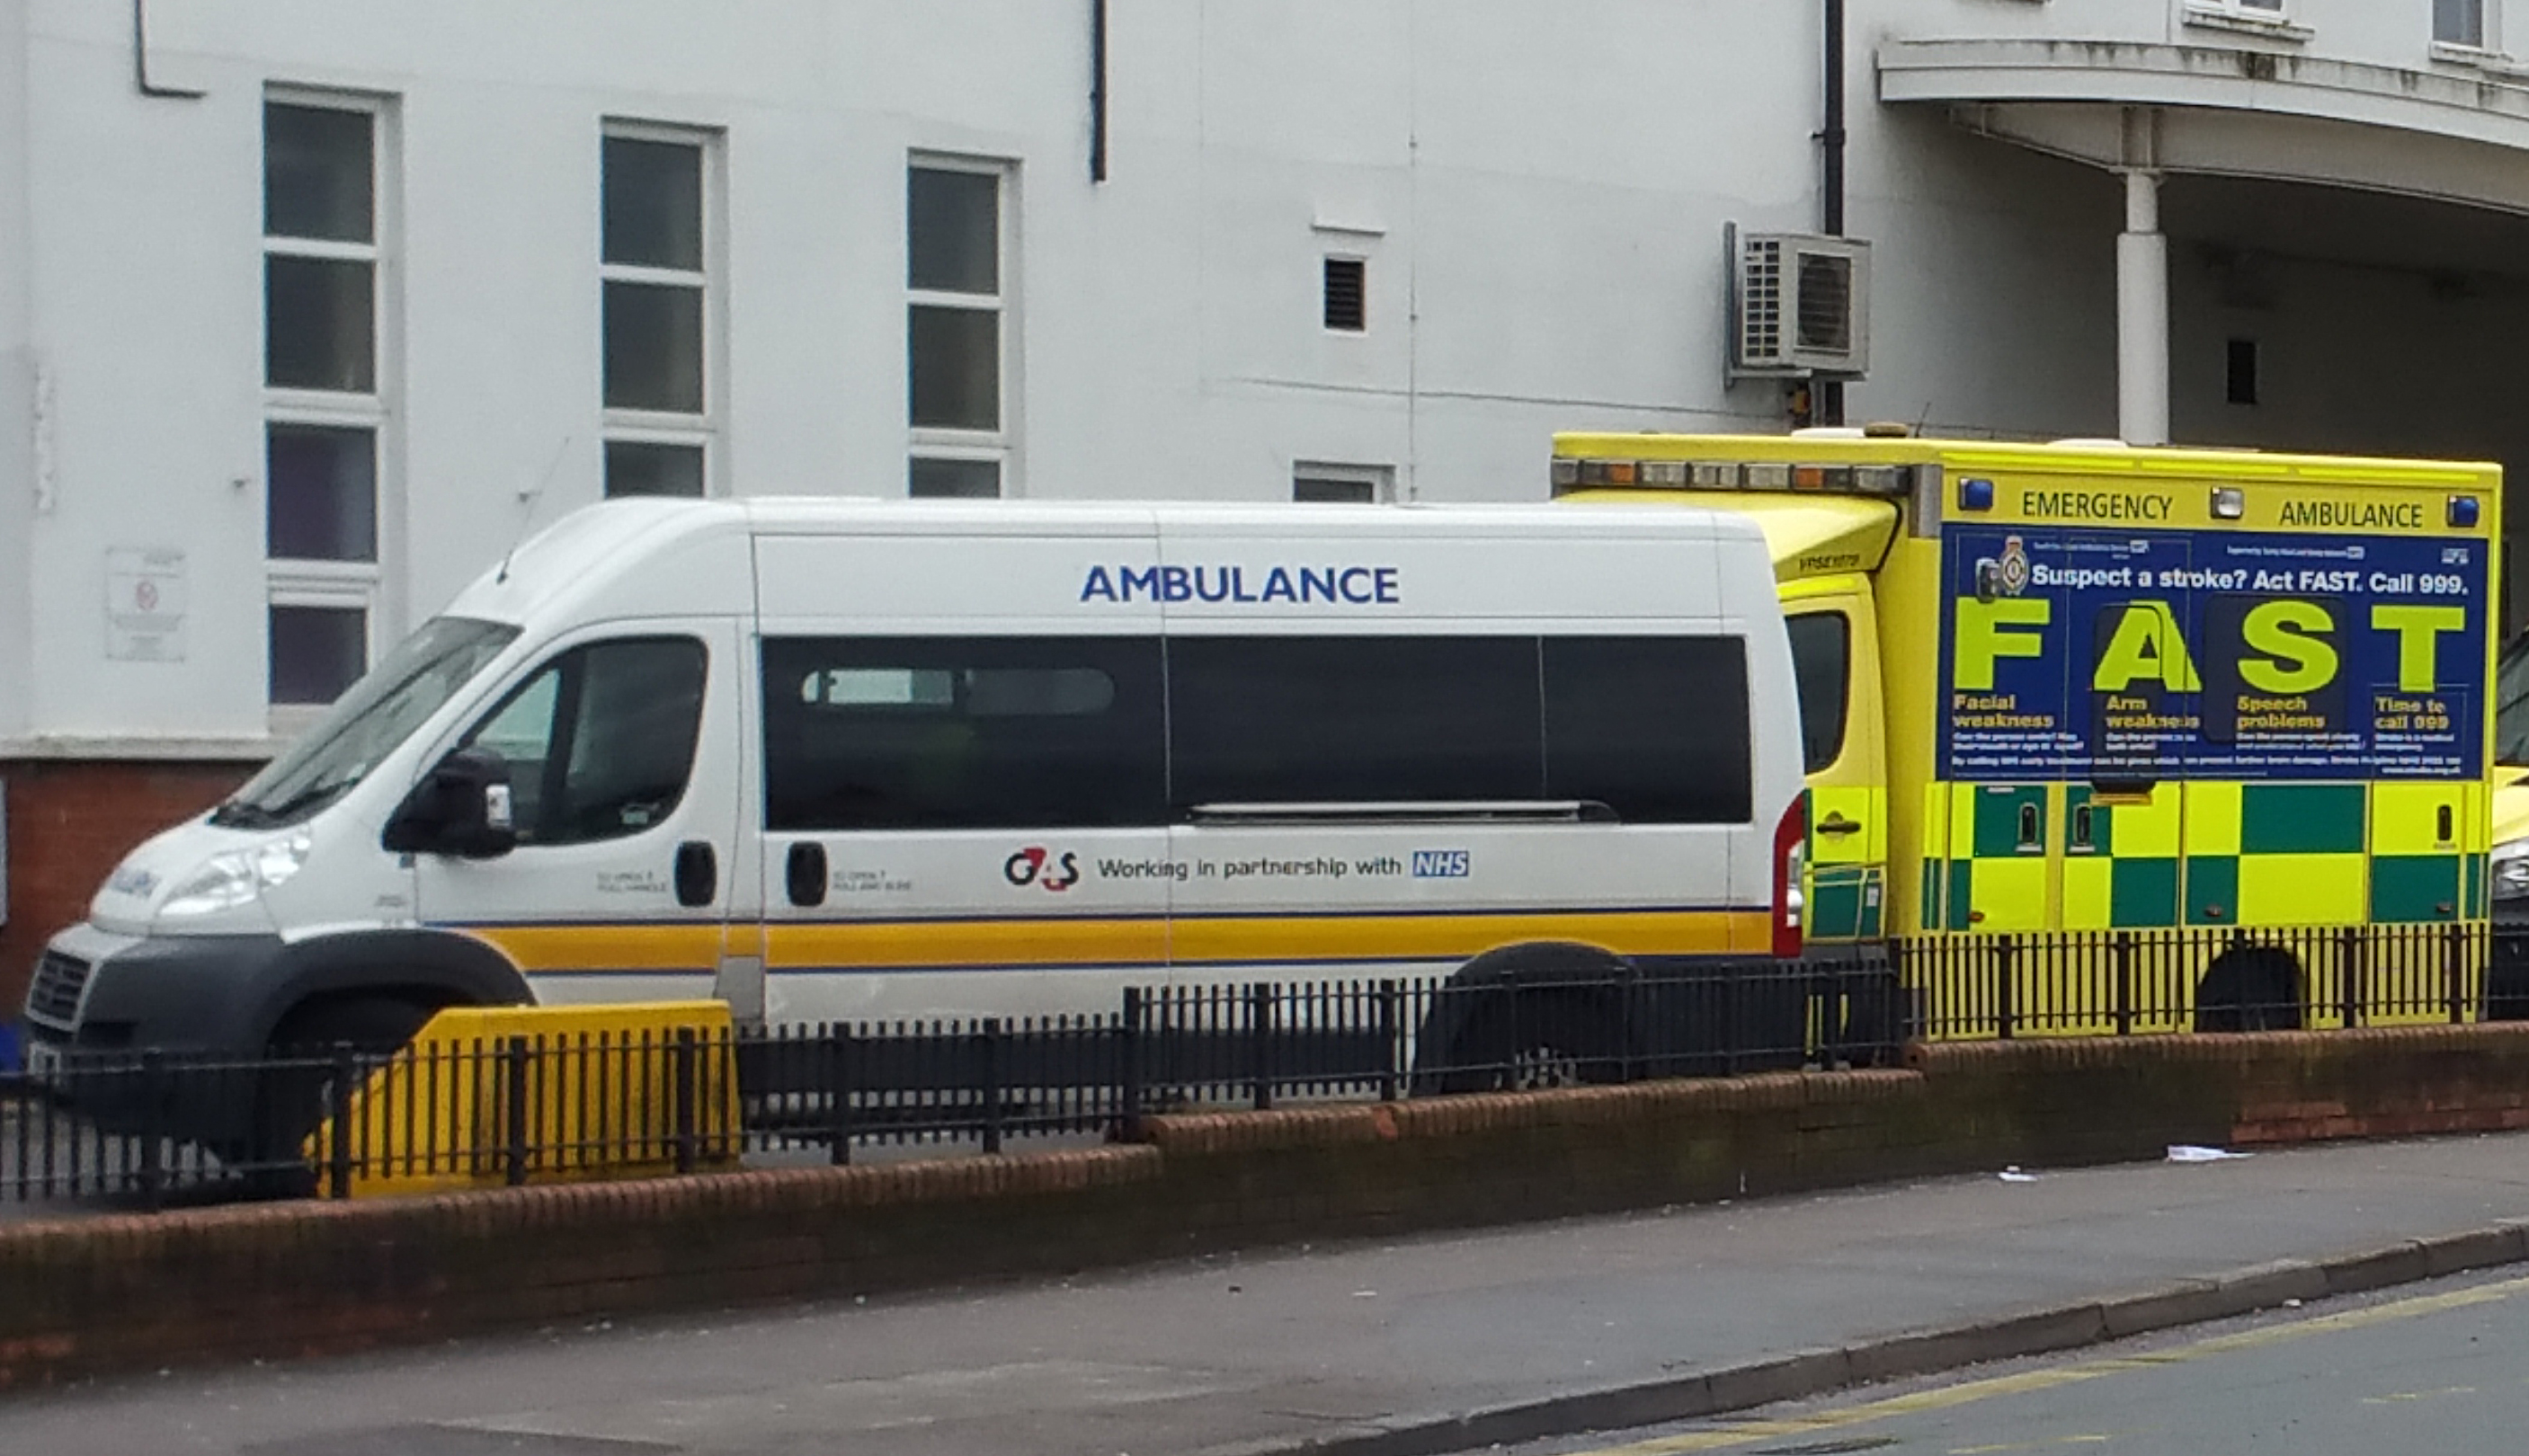 A G4S patient transport ambulance parked outside St Helier hospital, alongside an emergency ambulance.